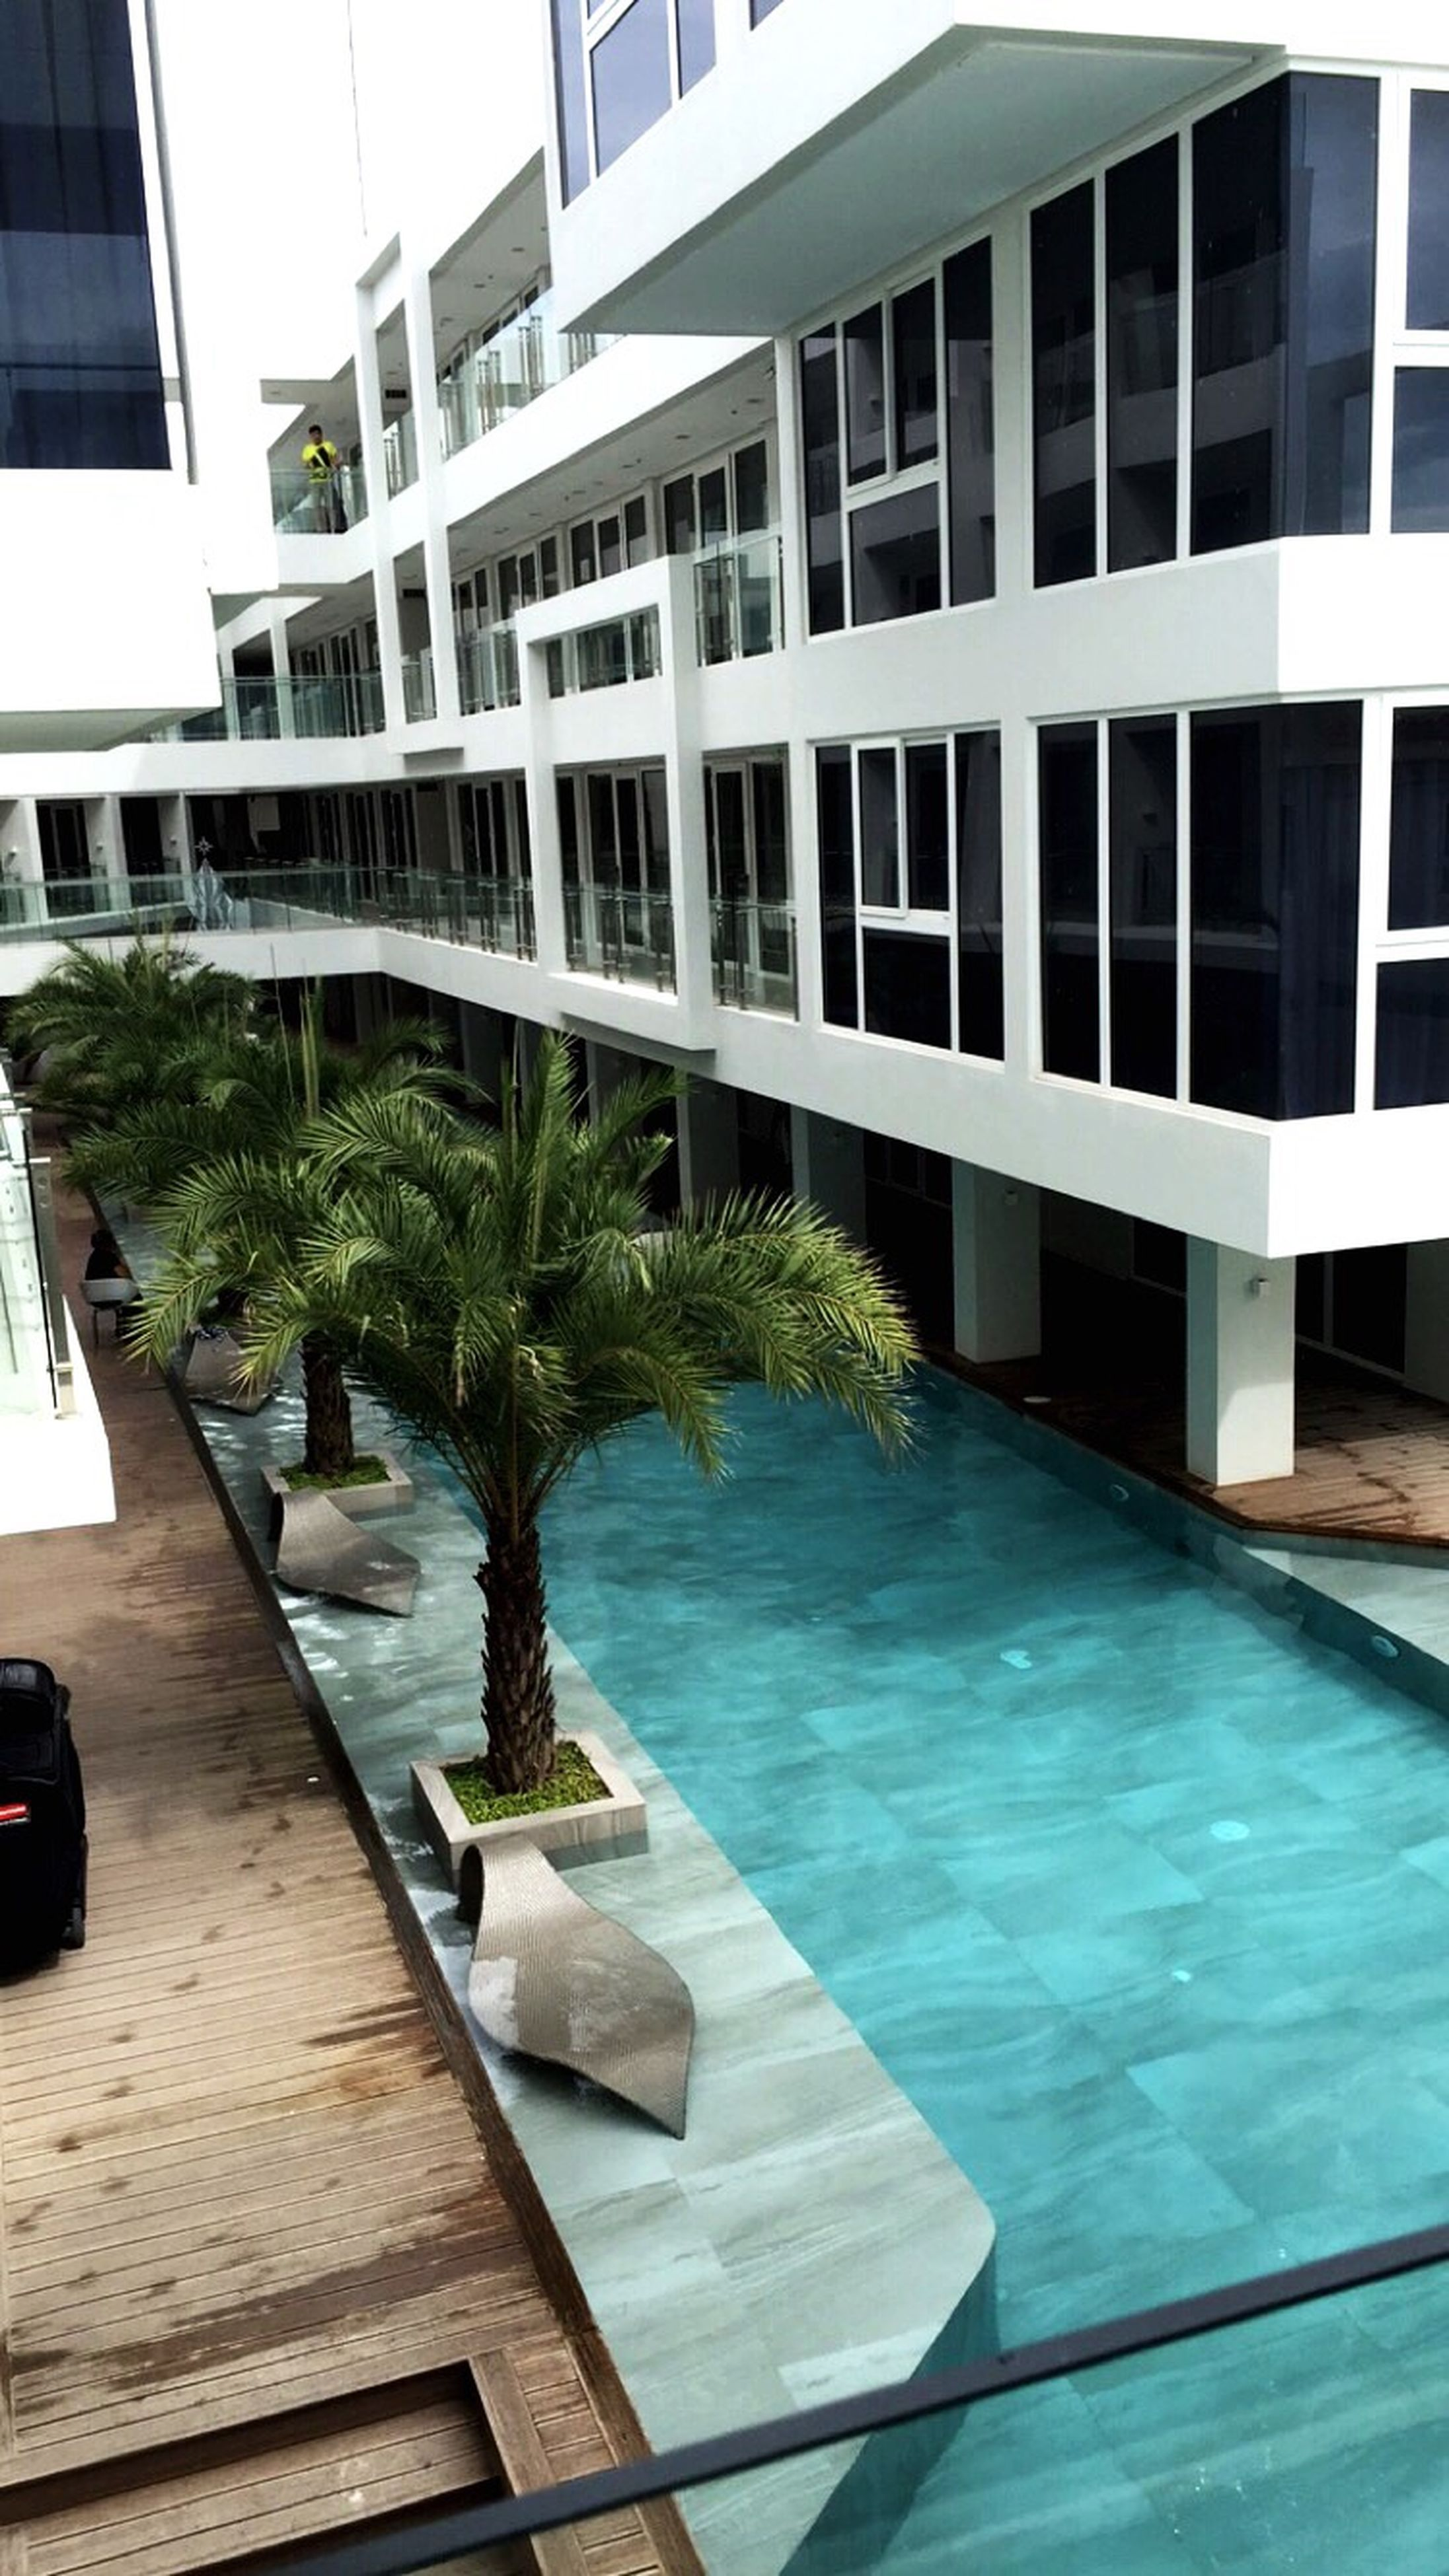 architecture, building exterior, built structure, swimming pool, water, reflection, window, glass - material, building, sunlight, city, day, residential building, table, tree, high angle view, house, no people, chair, outdoors